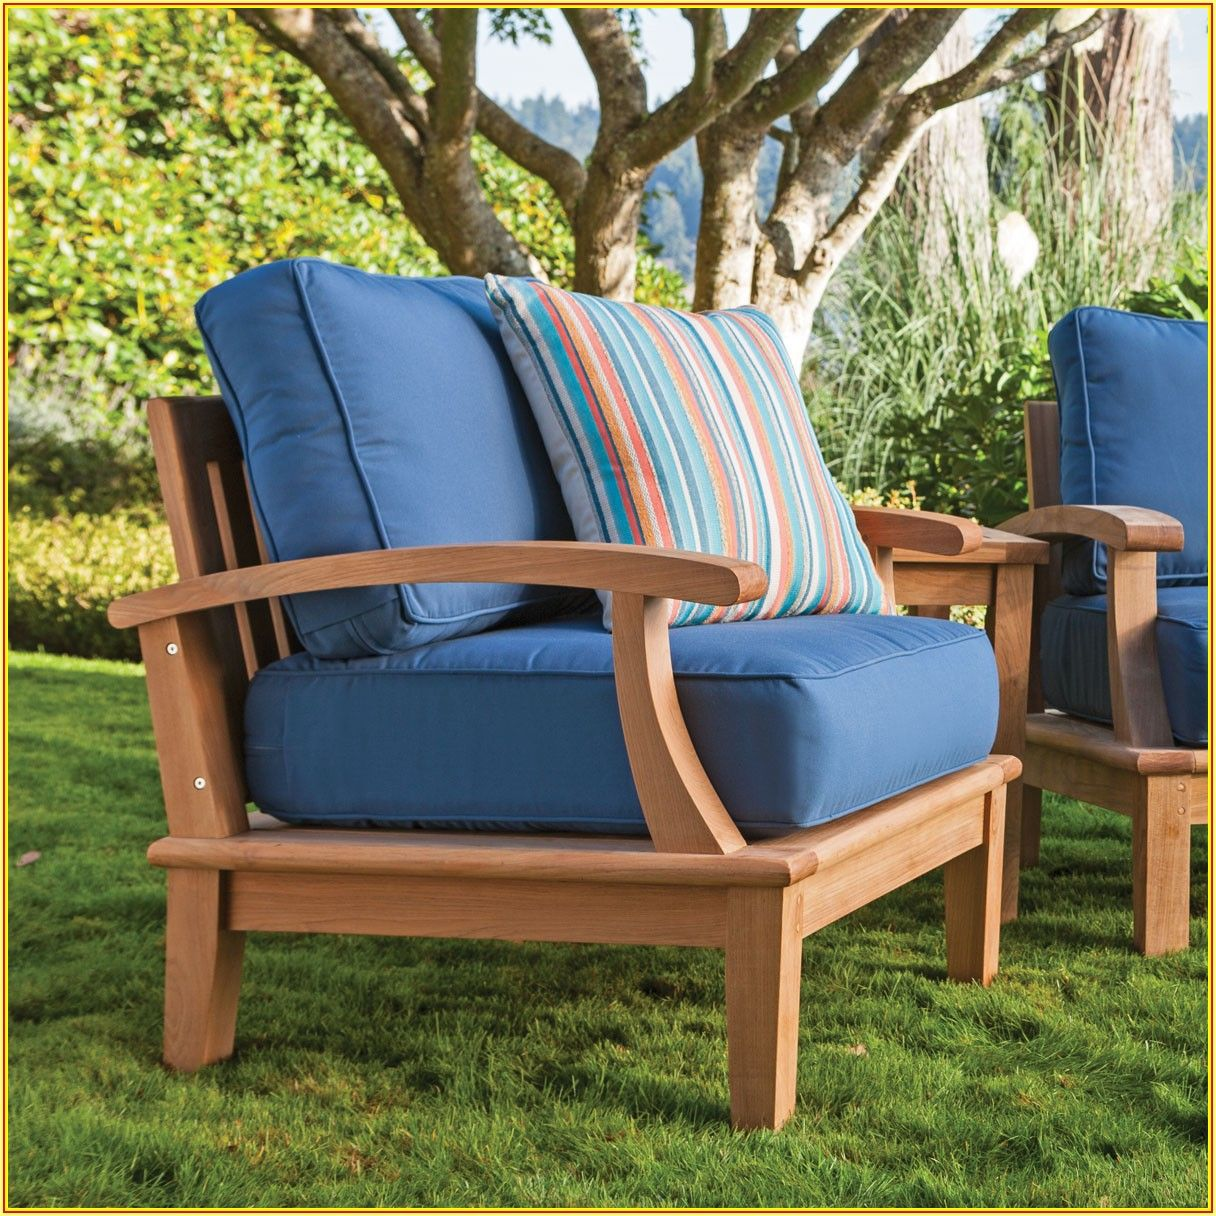 Patio Furniture With Sunbrella Cushions